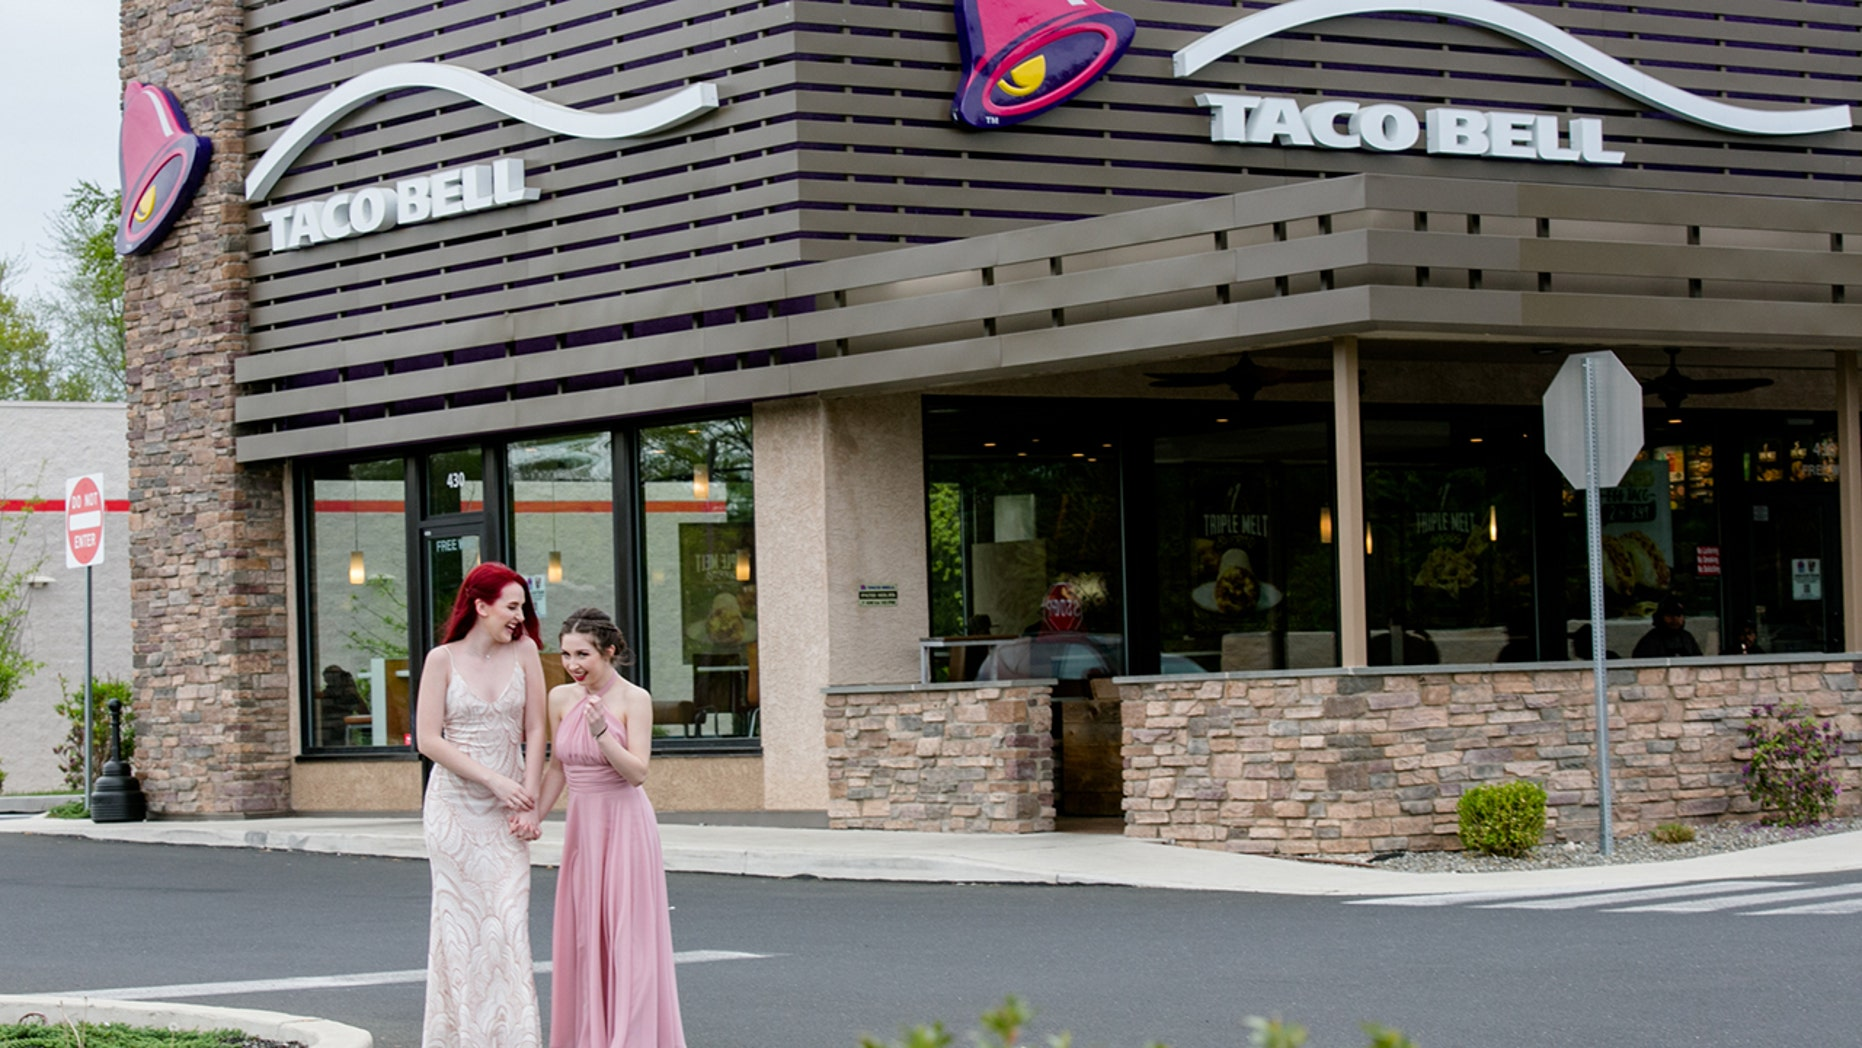 A Pennsylvania teen and her date decided to celebrate prom with a Taco Bell photo shoot.